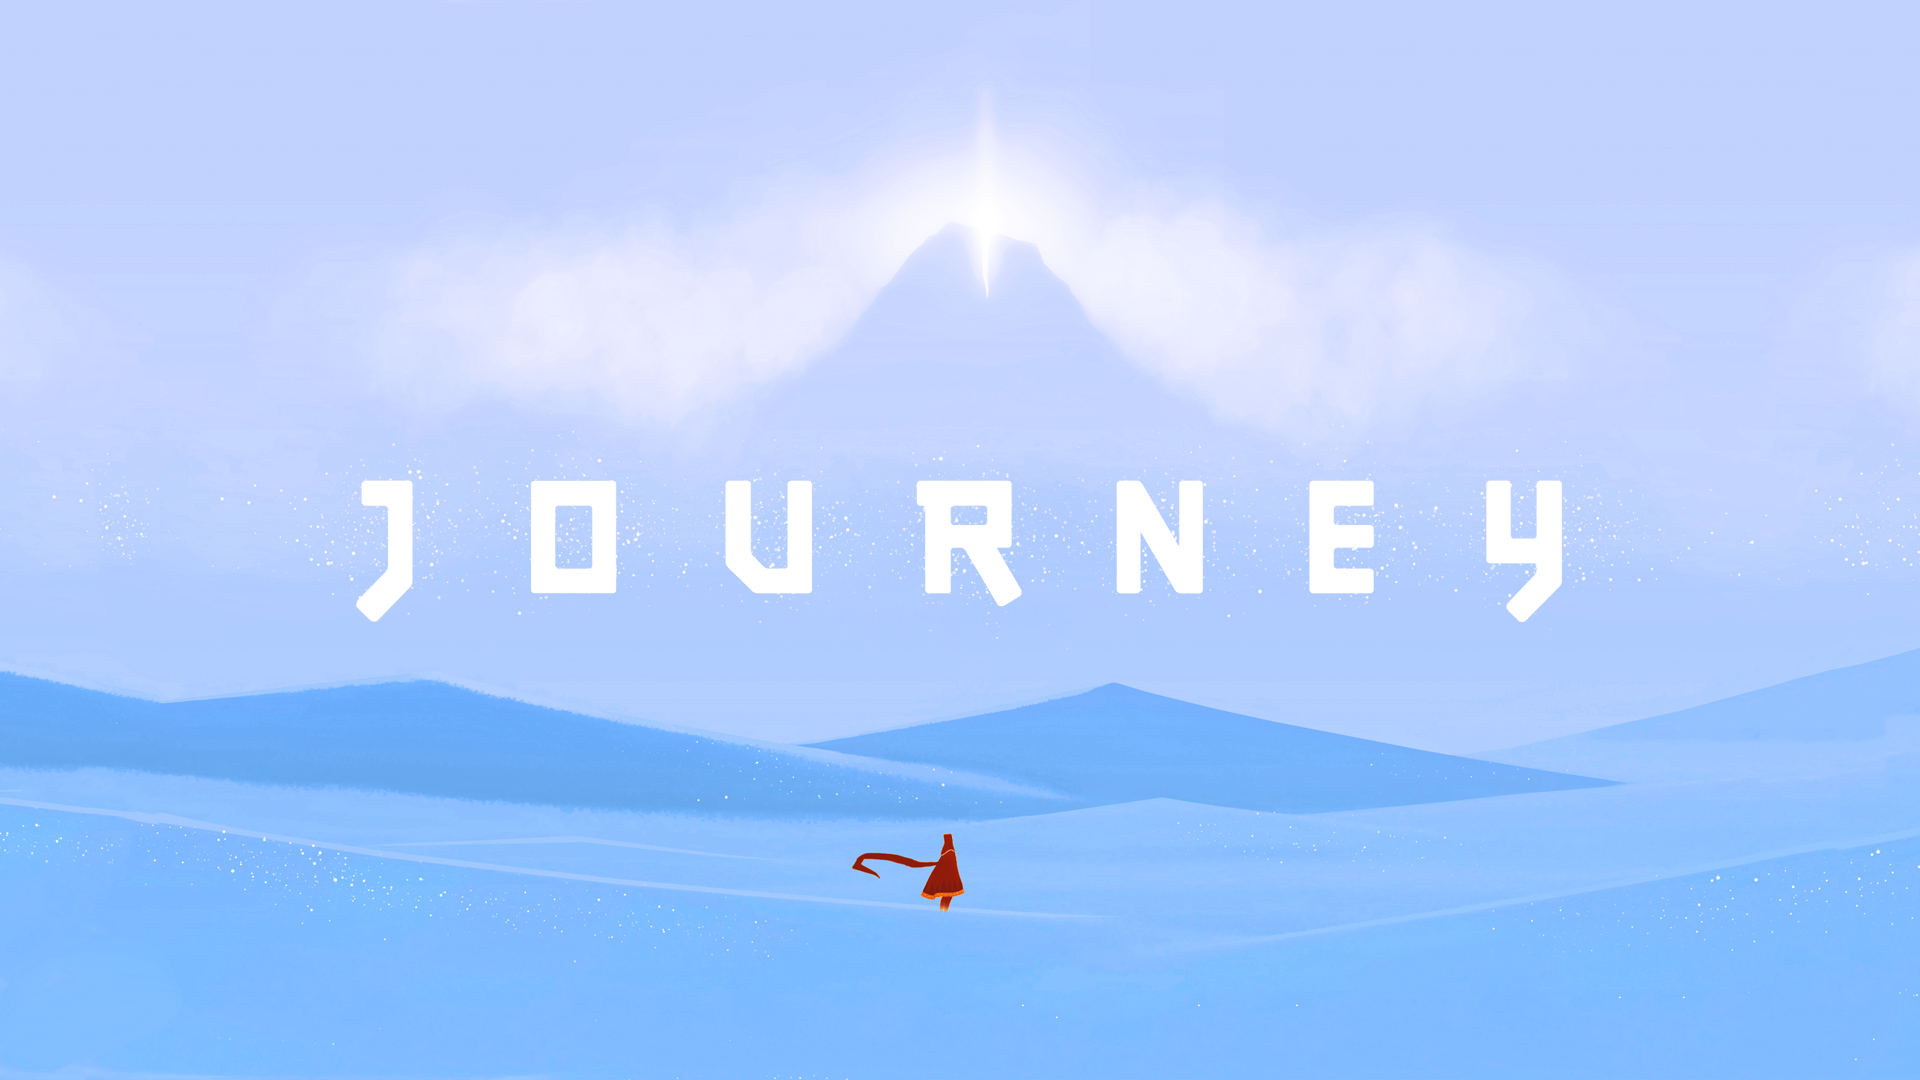 Journey Game wallpaper 1920x1080 52451 1920x1080